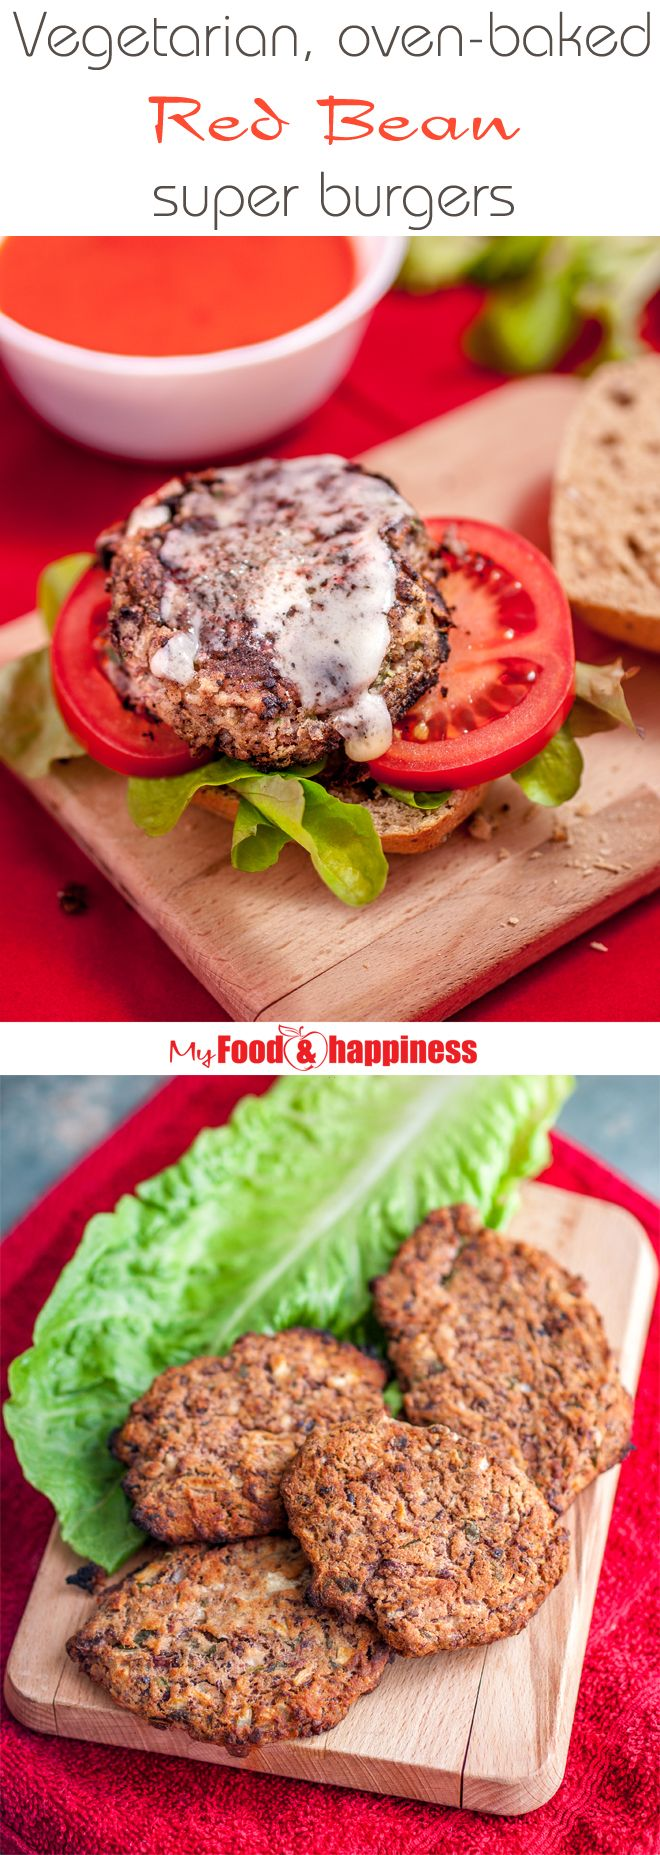 Super simple and delicious Red kidney beans vegetarian patties that require only a few main ingredients! Use an egg-substitute to make them vegan. Bake in the oven for a healthy meat-free meal tonight!